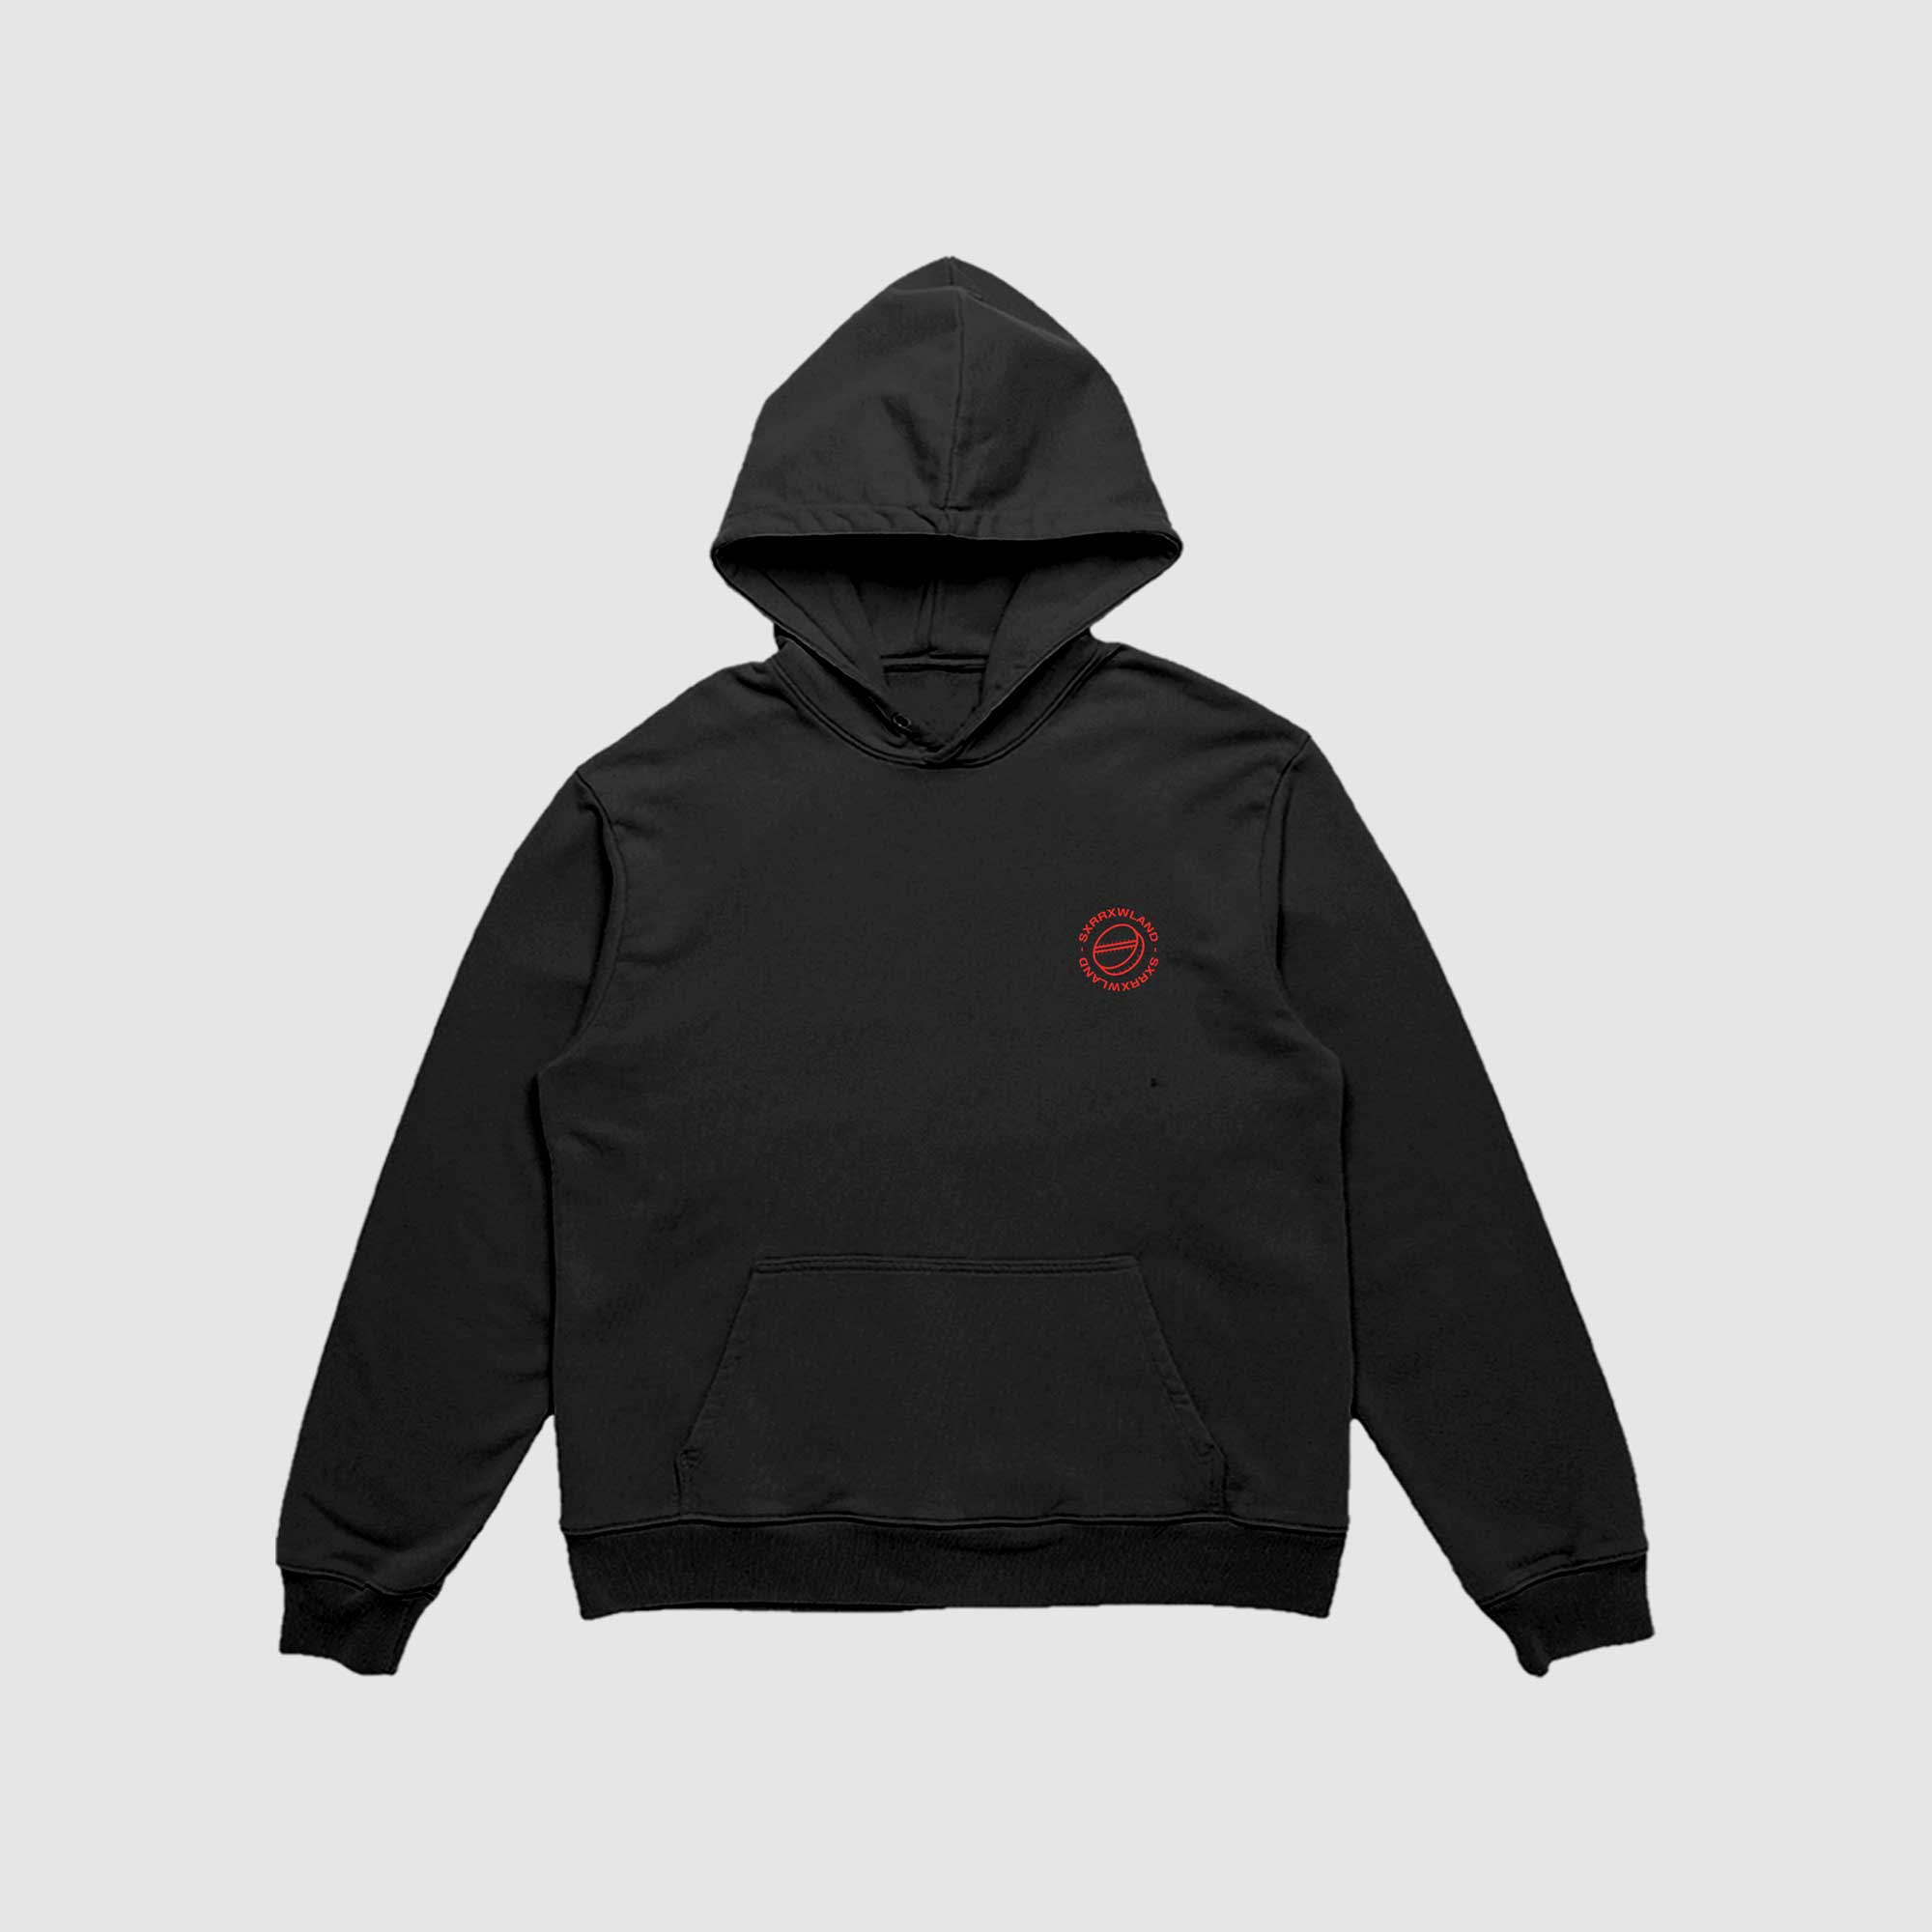 1_Hoodie_Front